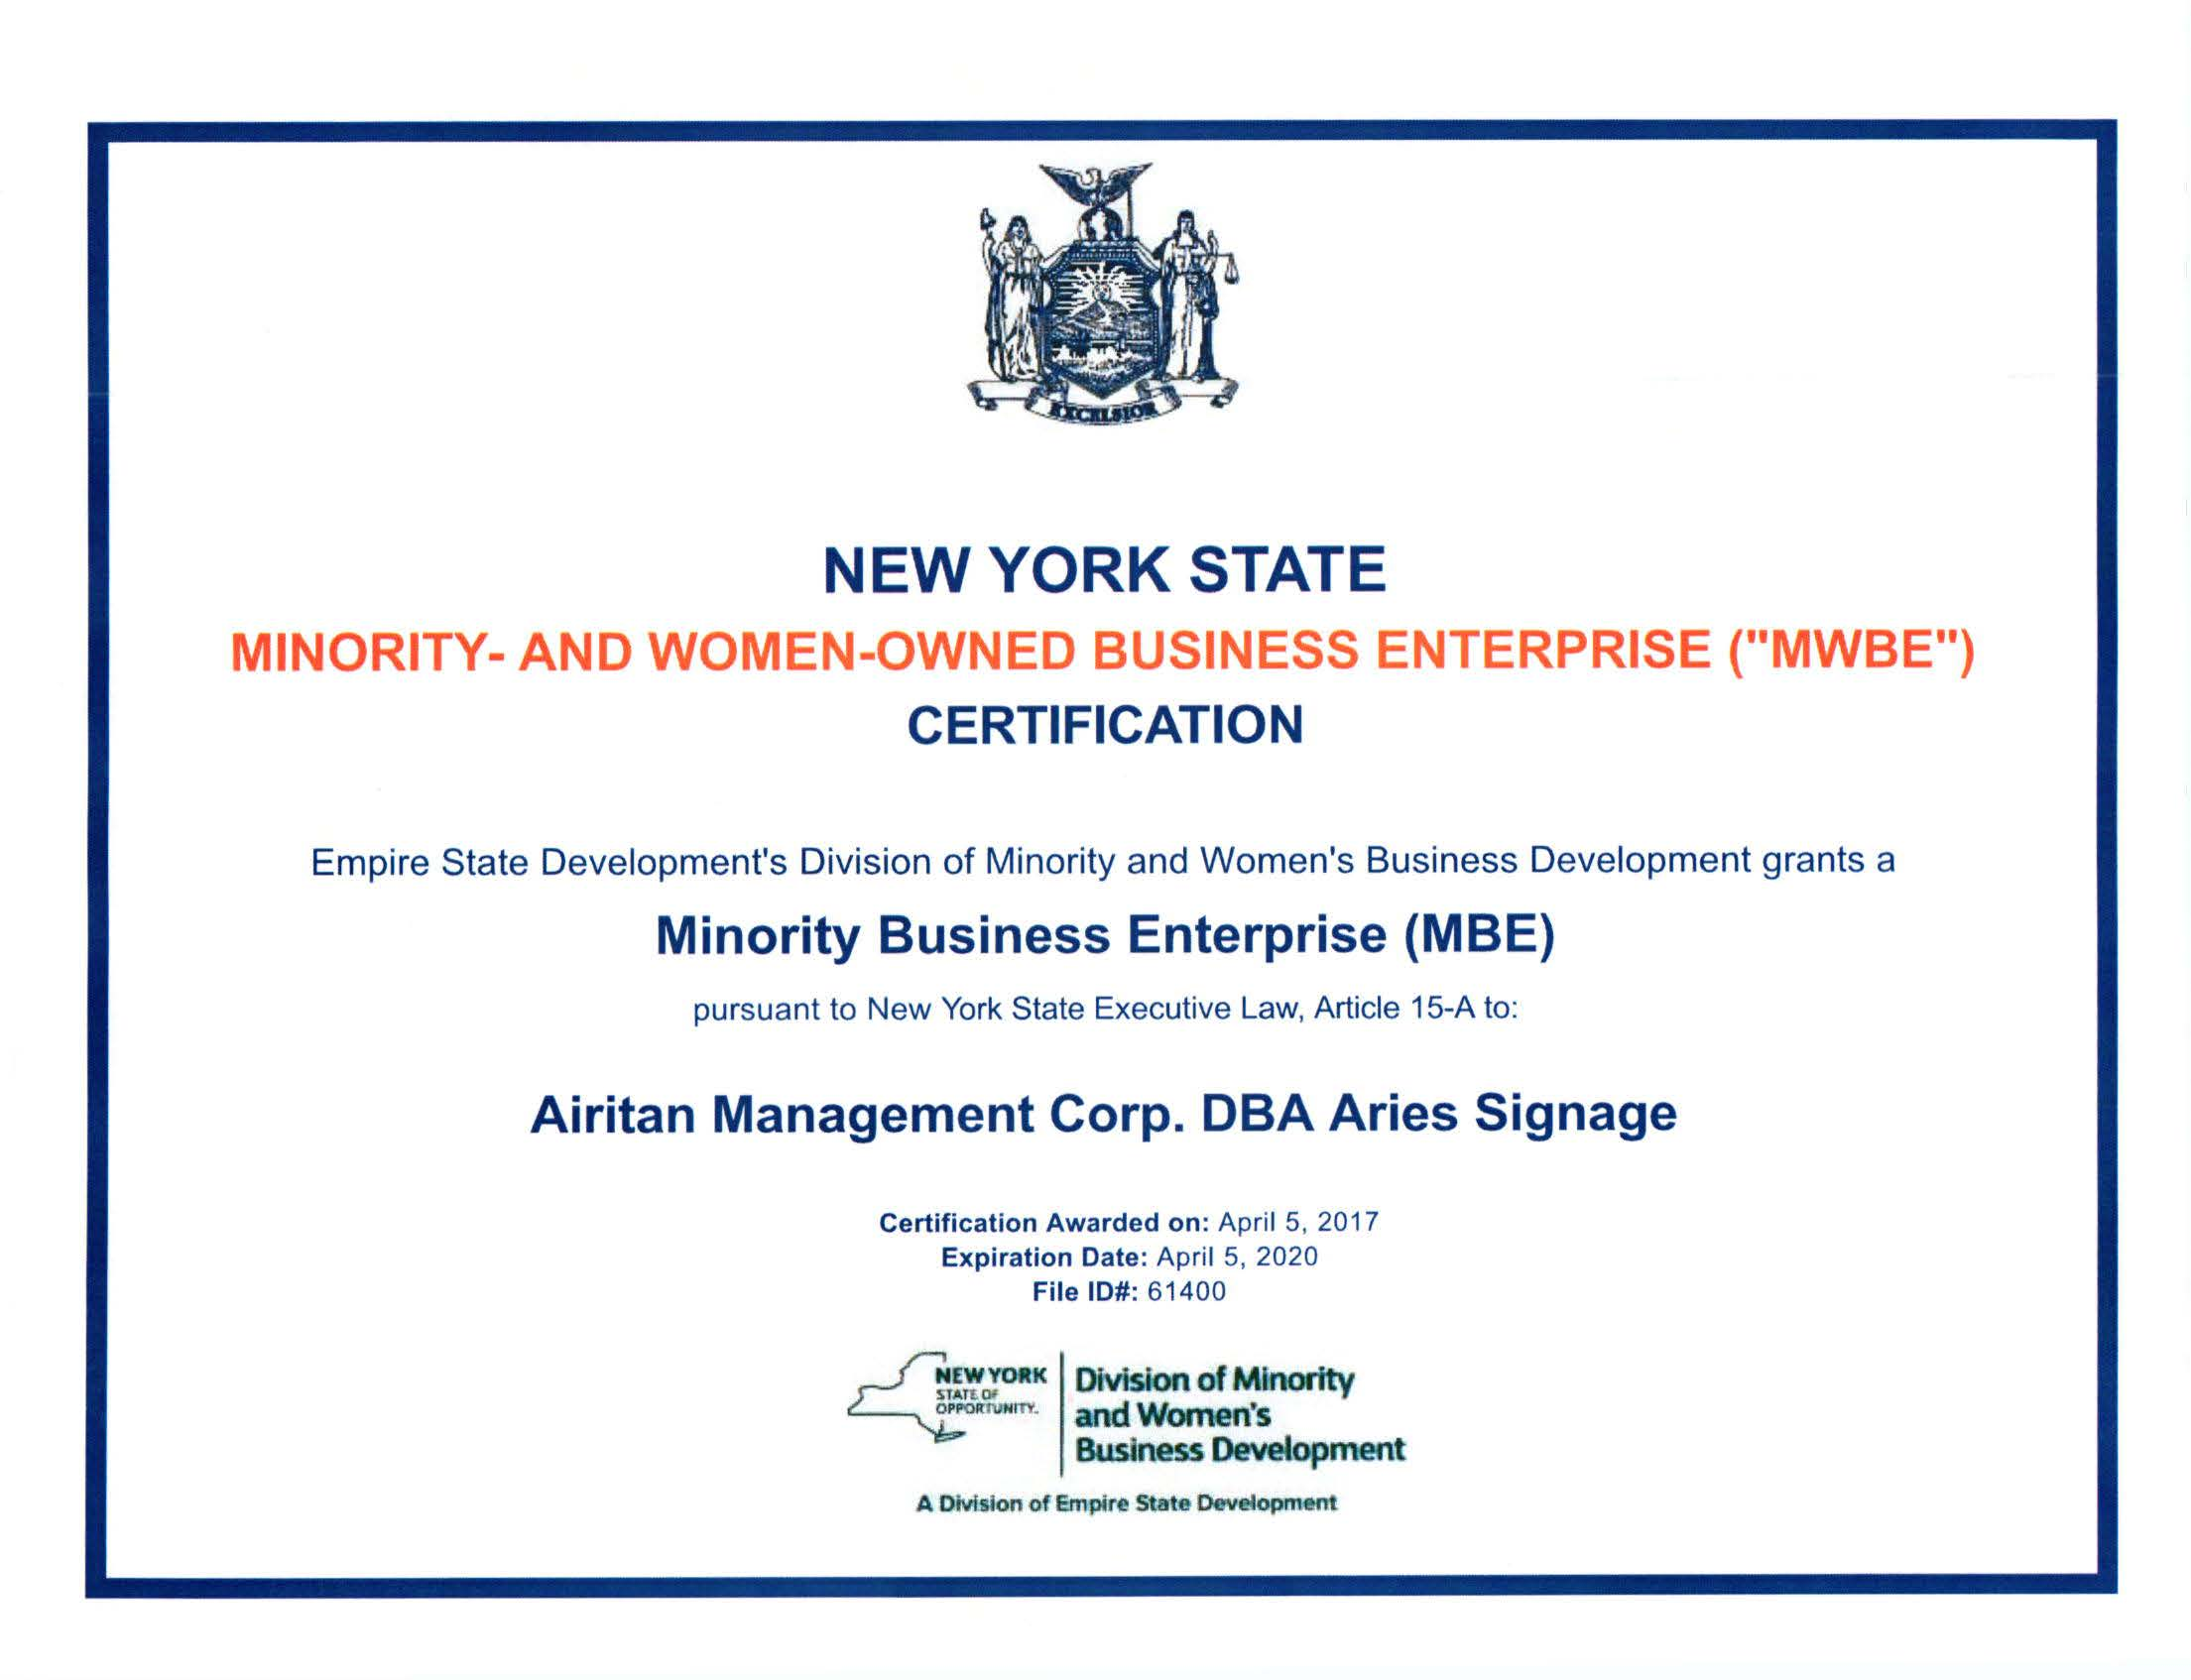 Nys Mbe Certificate Revised Copy Airitan Construction